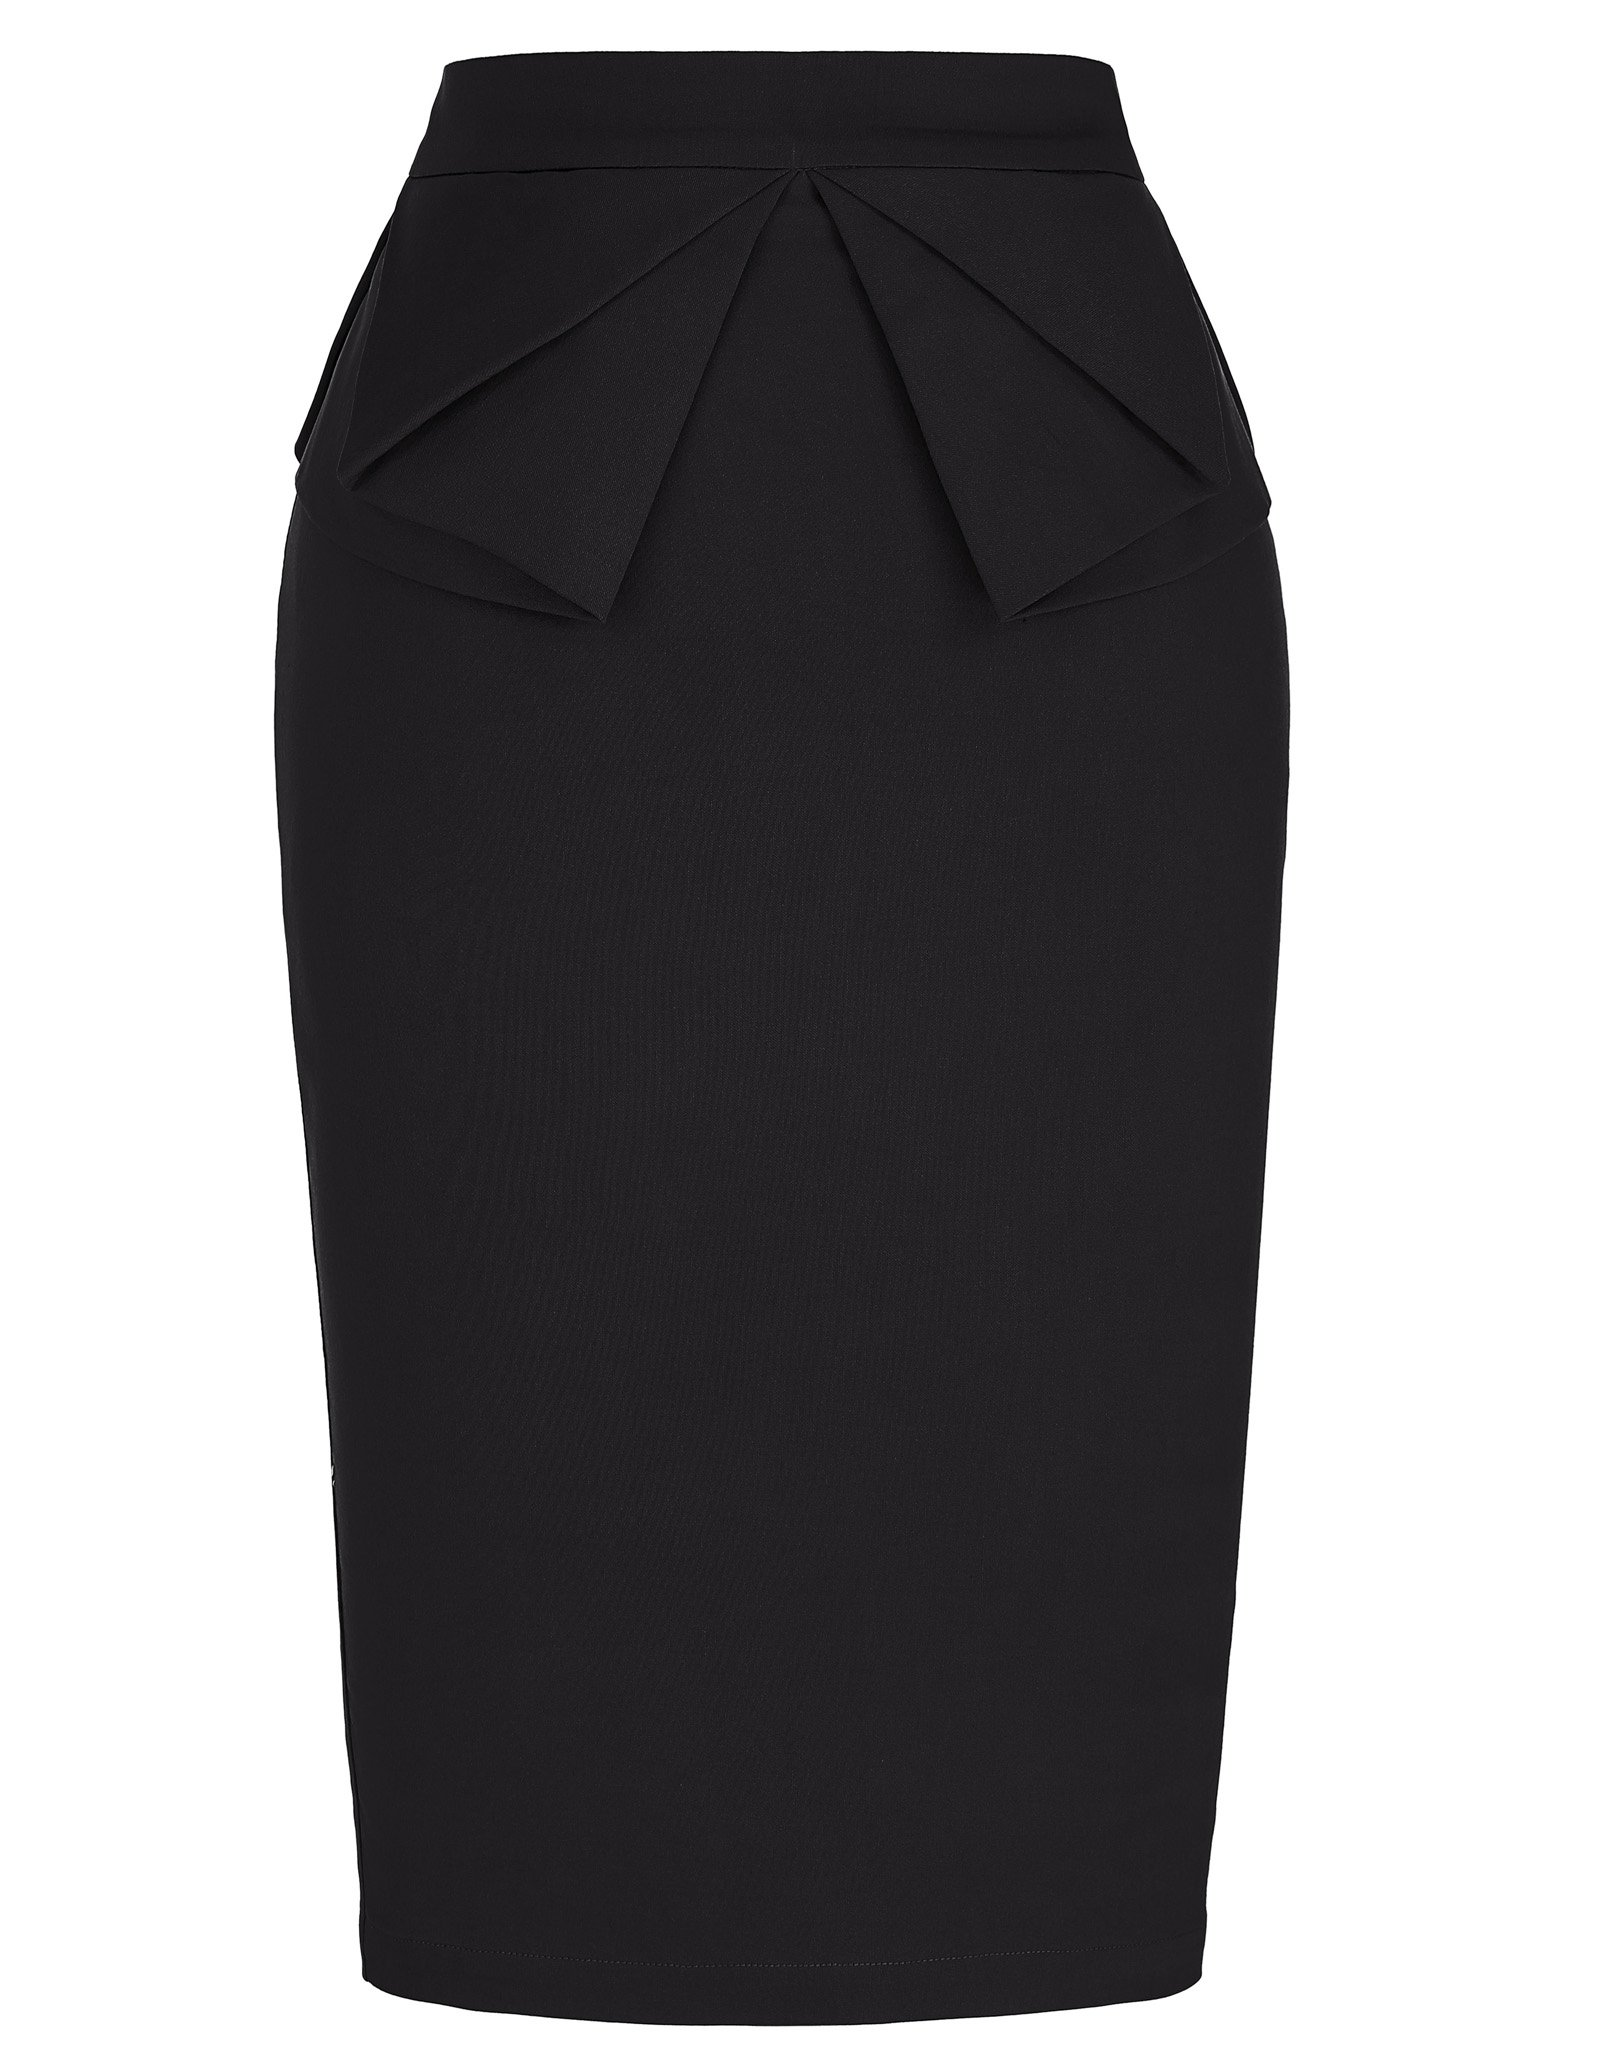 PrettyWorld Vintage Dress Elastic Women Bodycon Pencil Skirt Wear to Work  KL-1 CL454,Cl454-black,Large